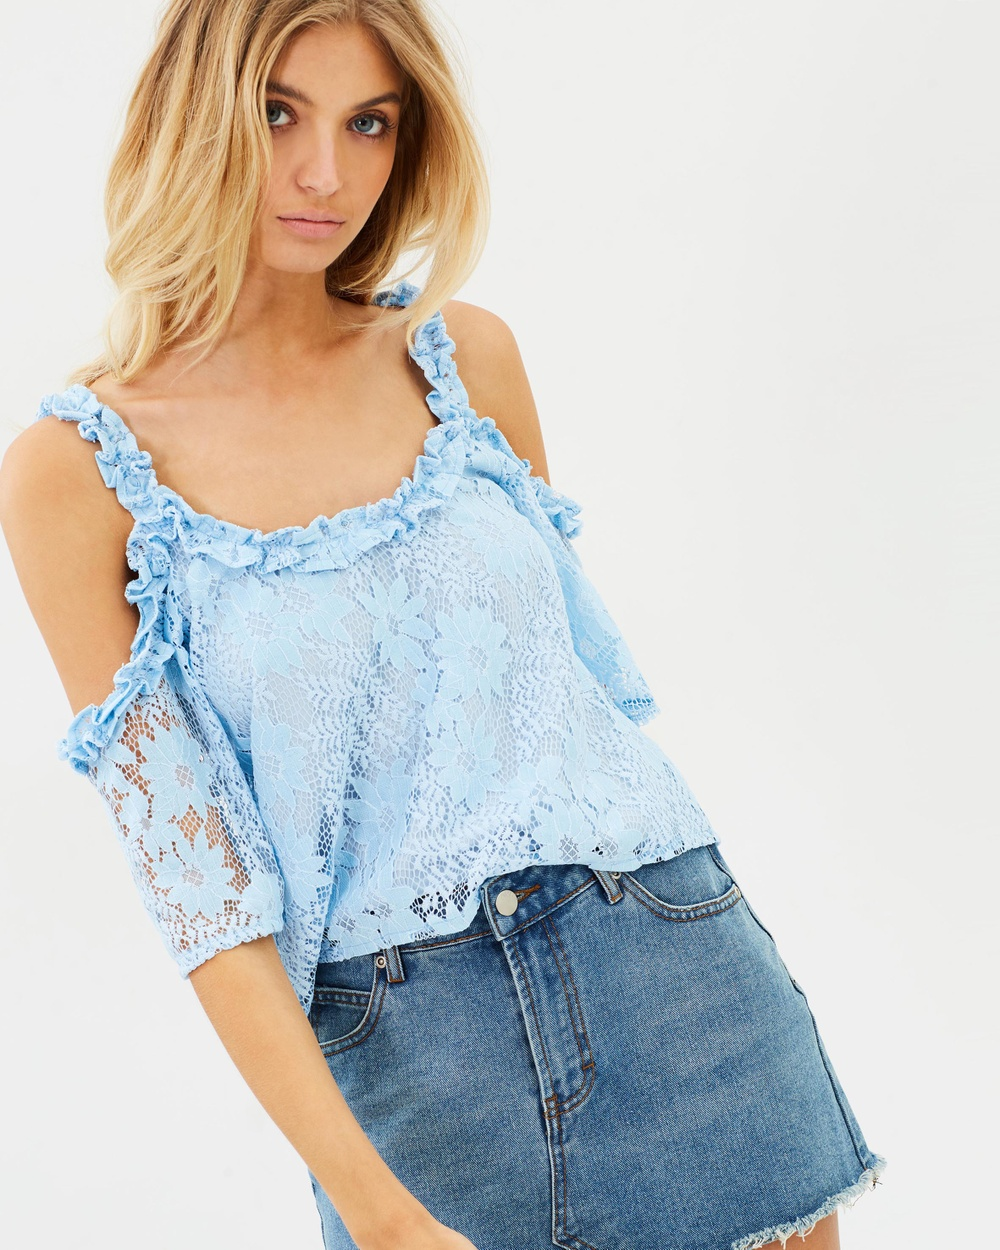 Atmos & Here ICONIC EXCLUSIVE Lola Lace Cold Shoulder Top Tops Powder Blue ICONIC EXCLUSIVE Lola Lace Cold Shoulder Top